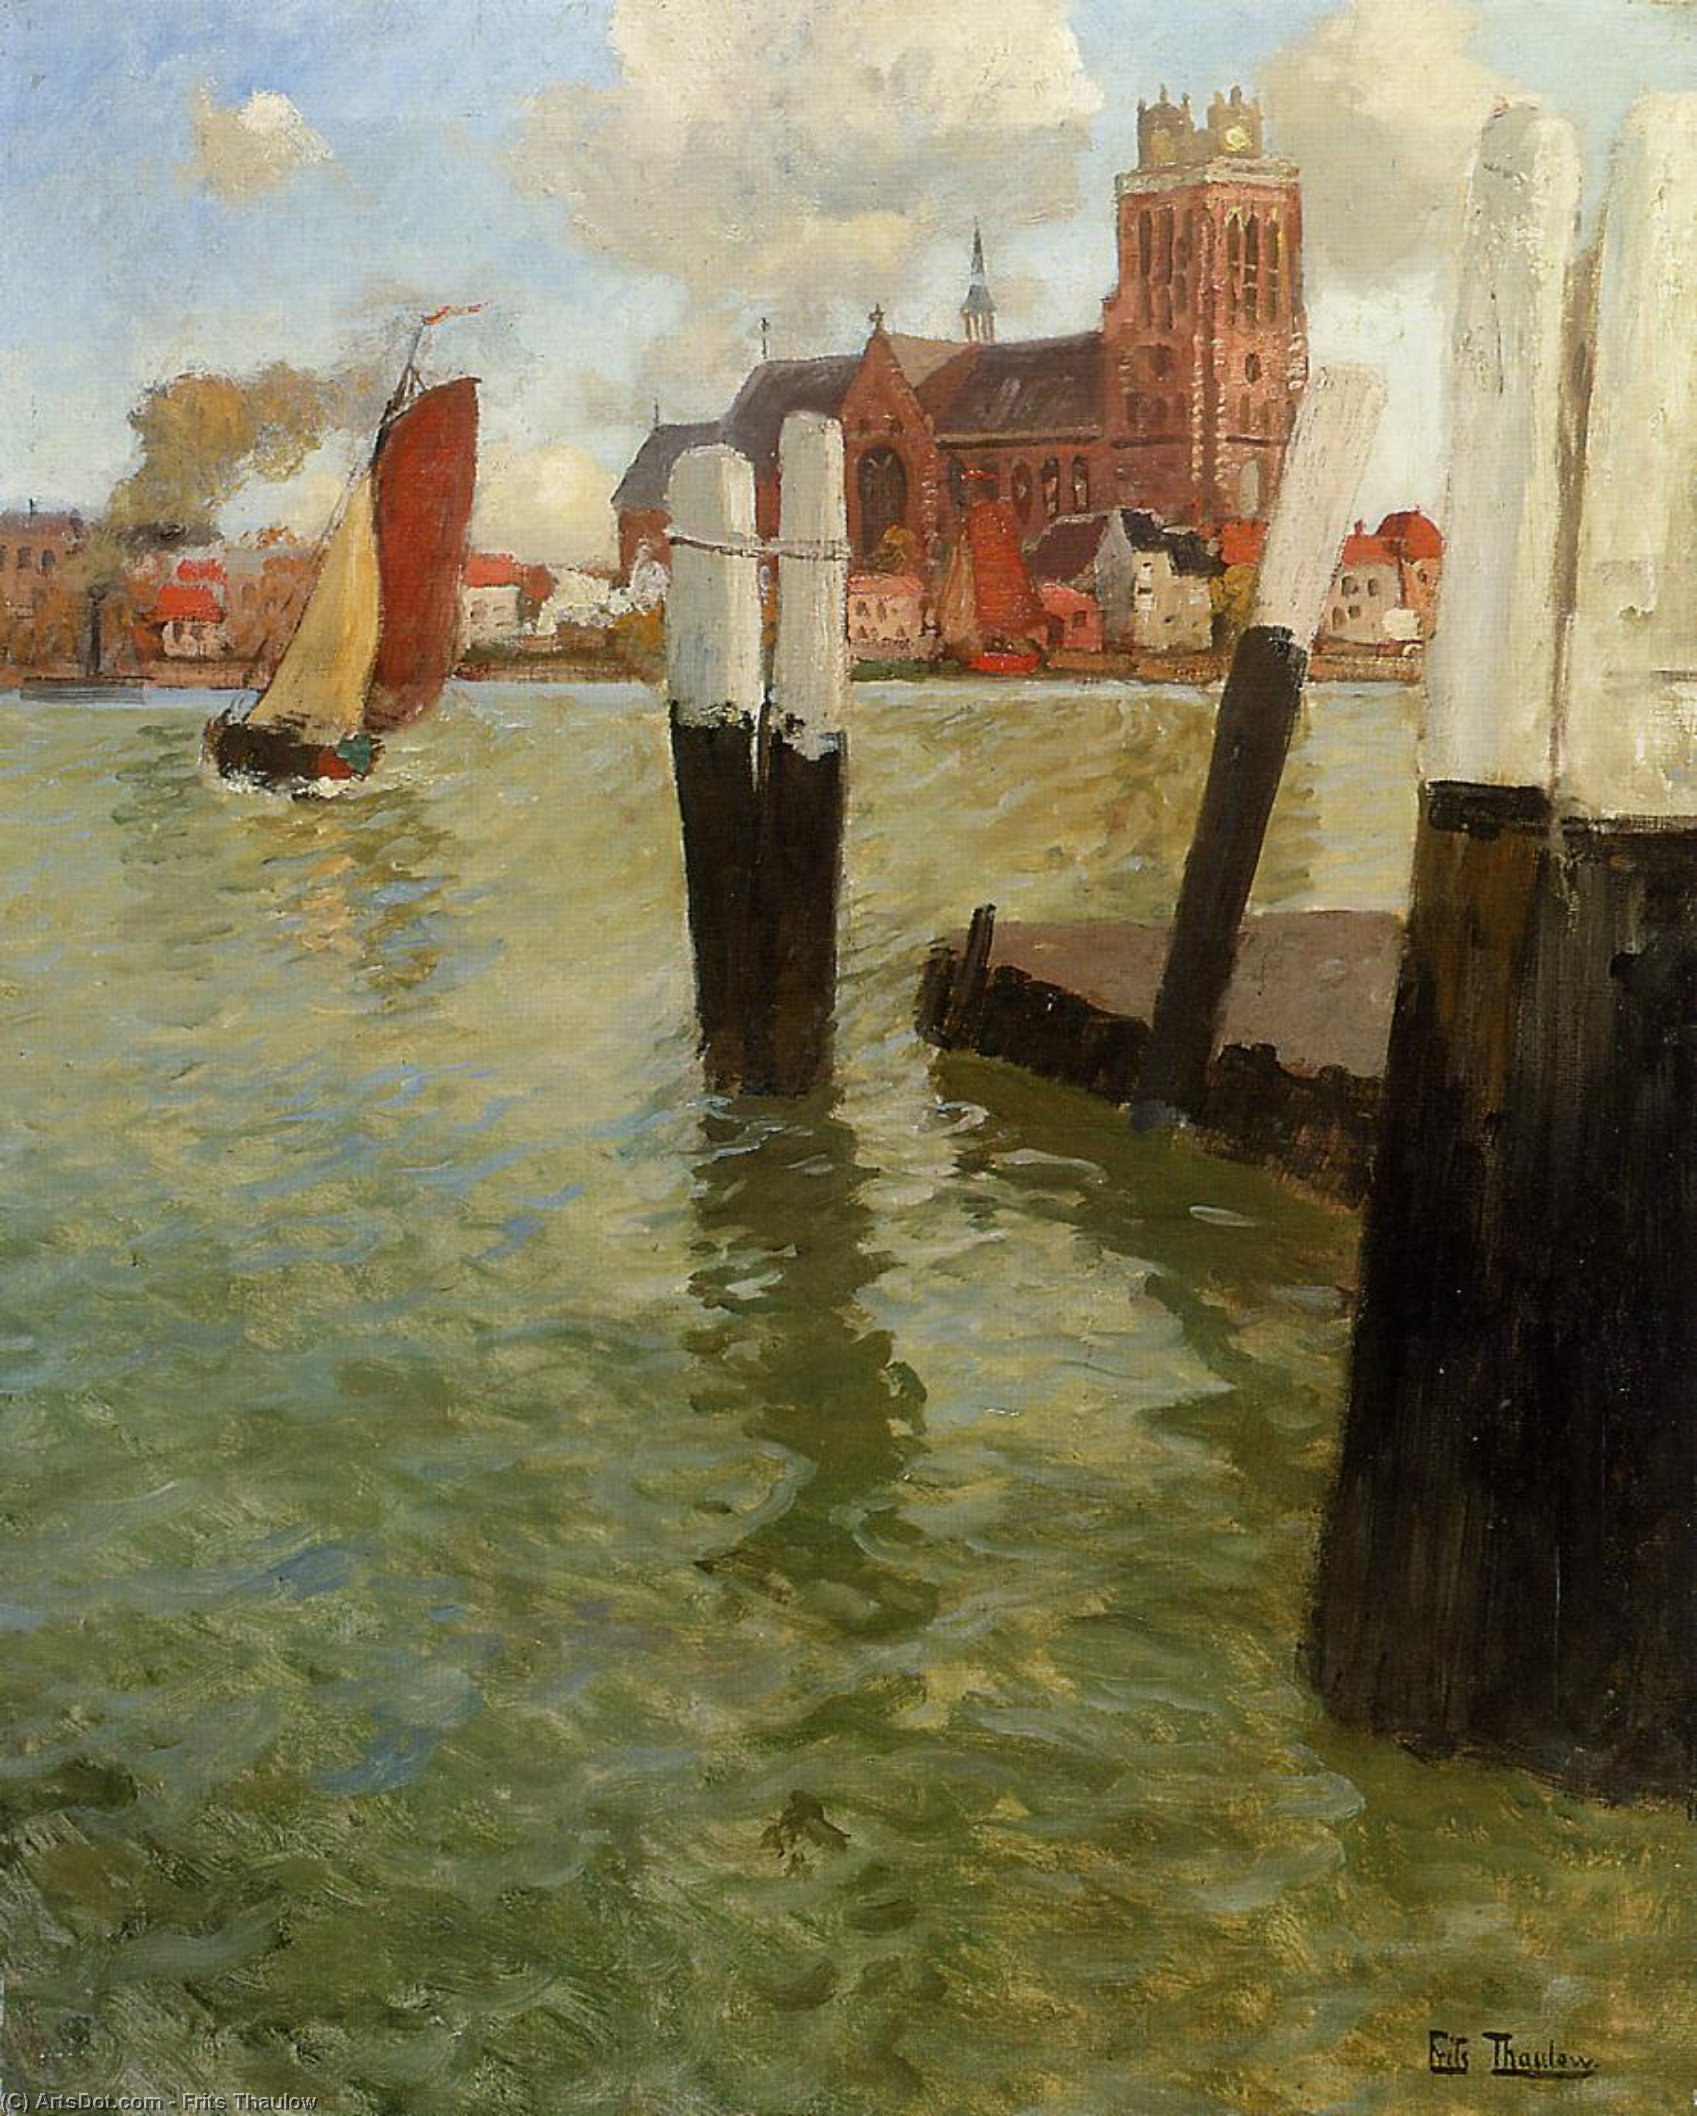 The Pier, Dordrecht, 1905 by Frits Thaulow (1847-1906, Norway) | ArtsDot.com